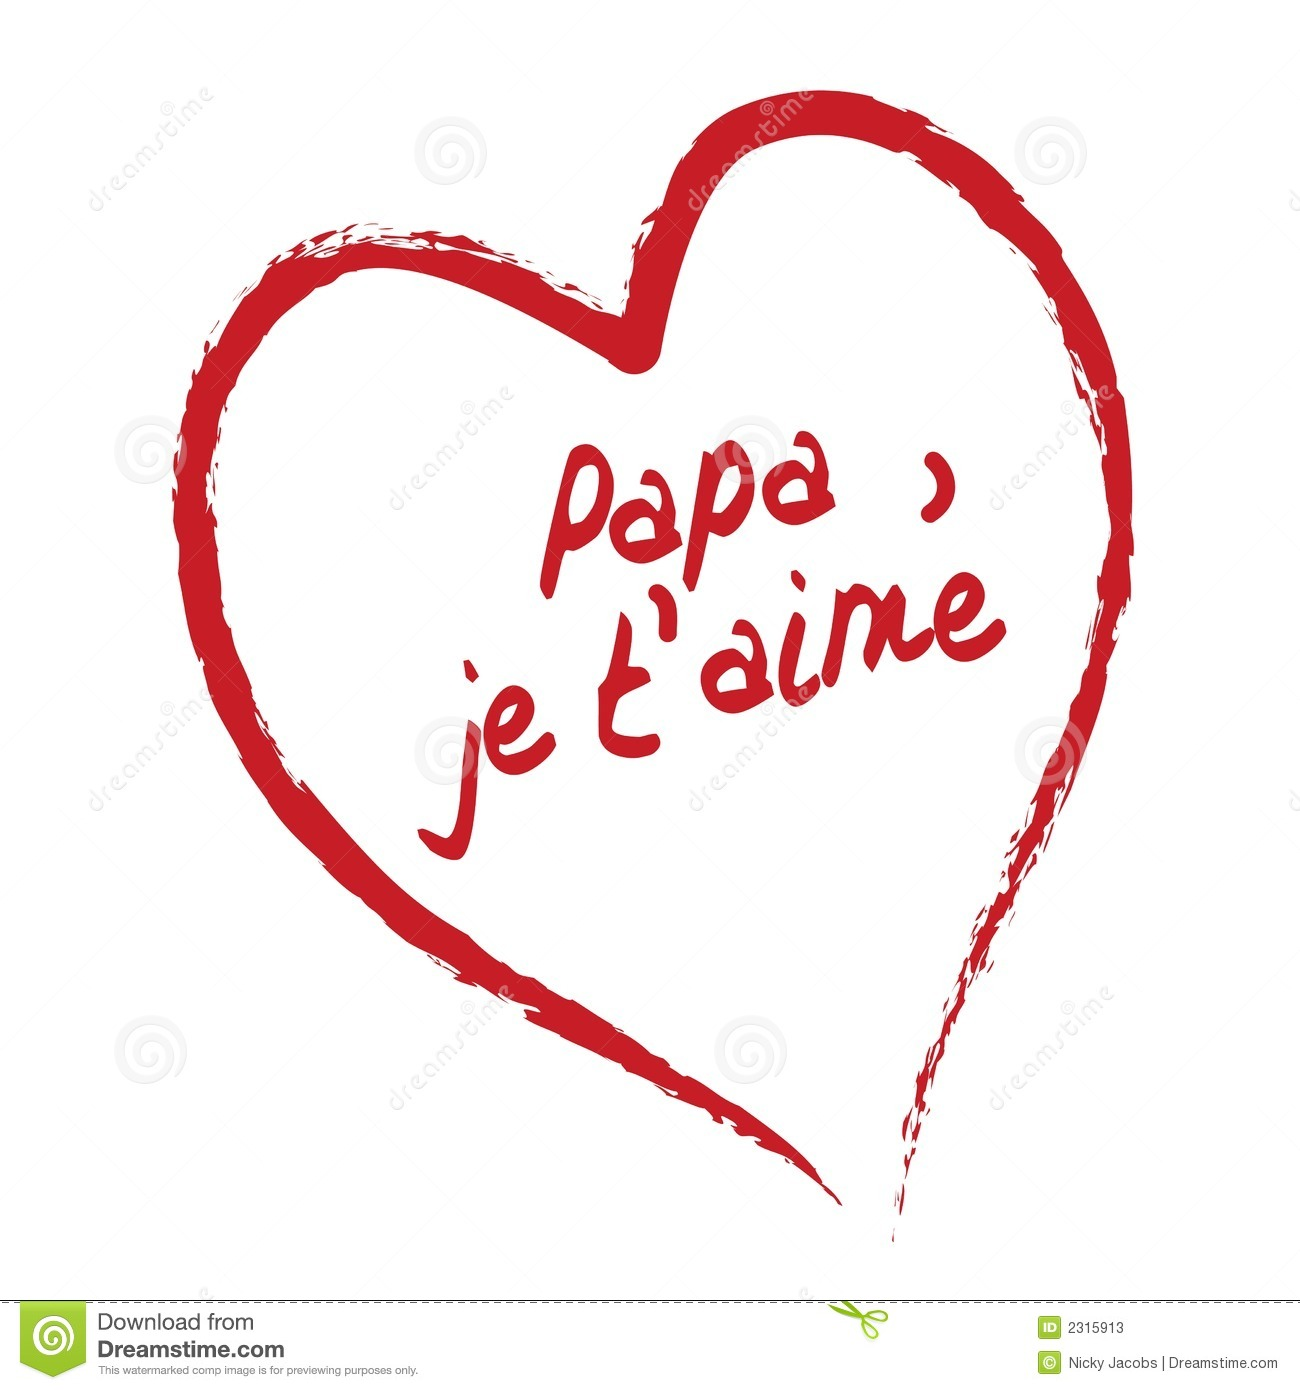 Papa Je T'aime Card Stock Vector. Illustration Of France